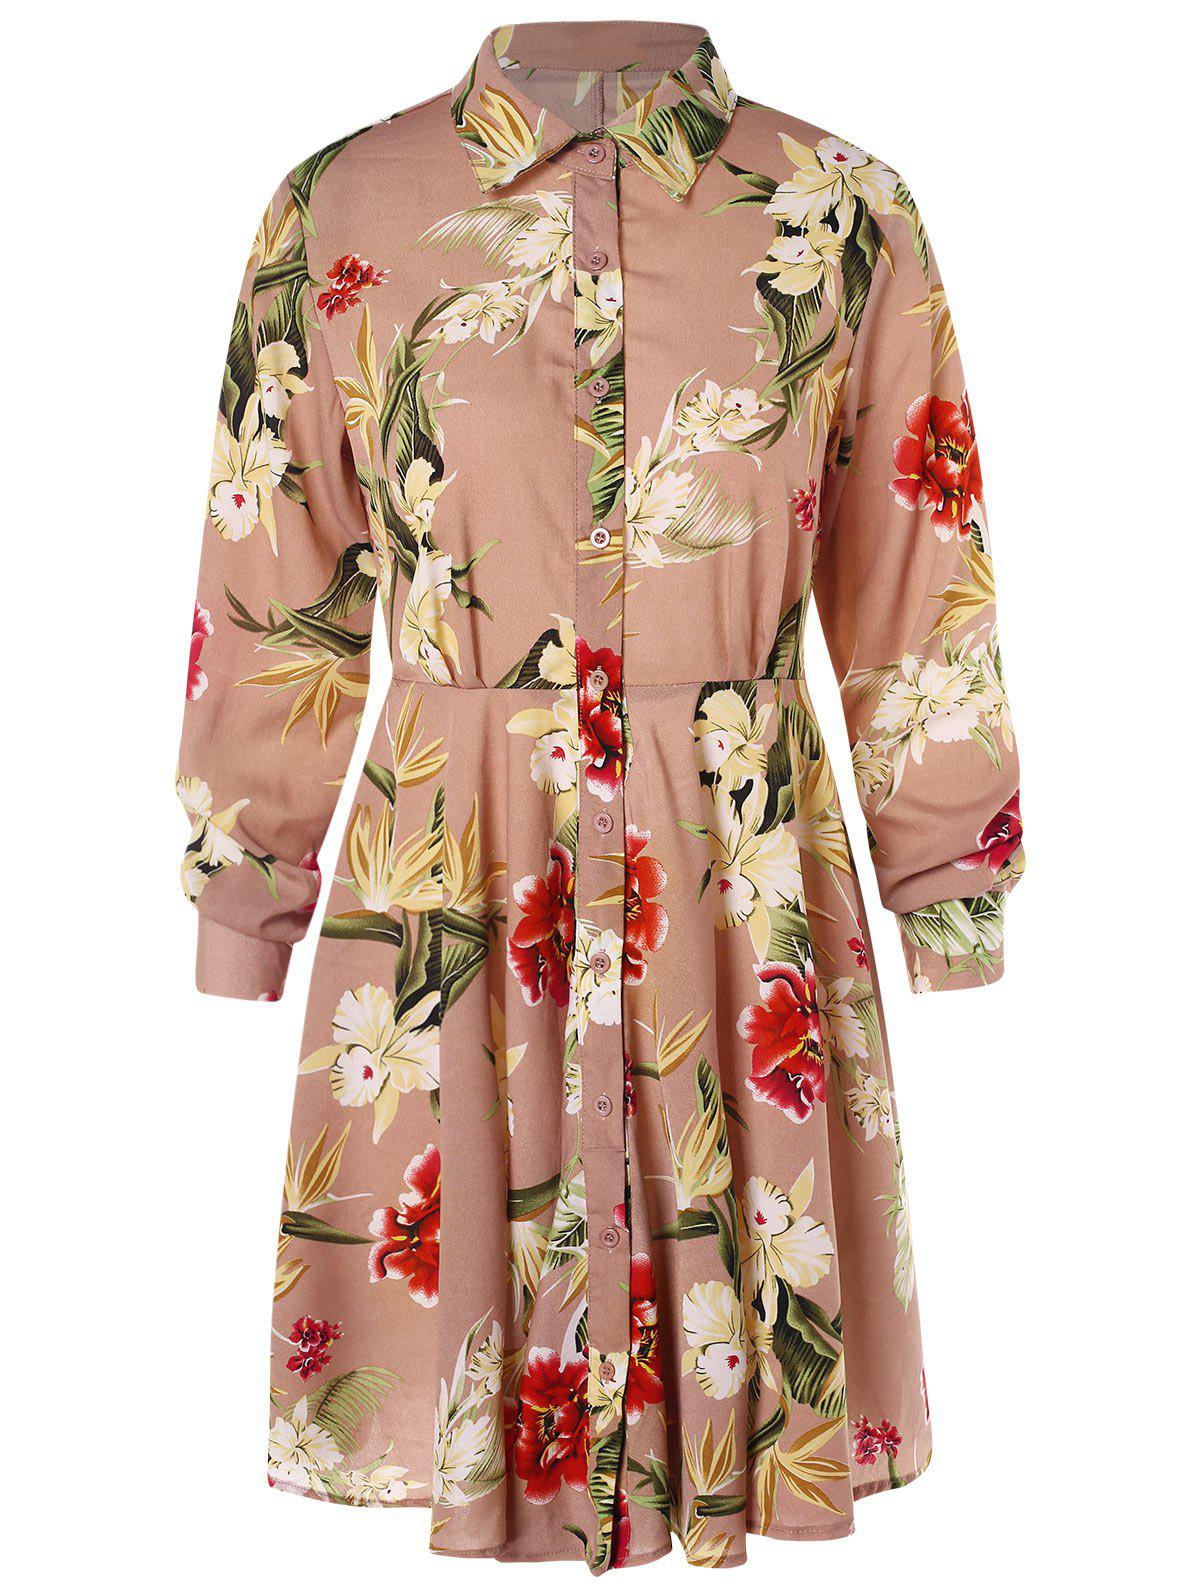 Sale Floral Print High Waist Shirt Dress